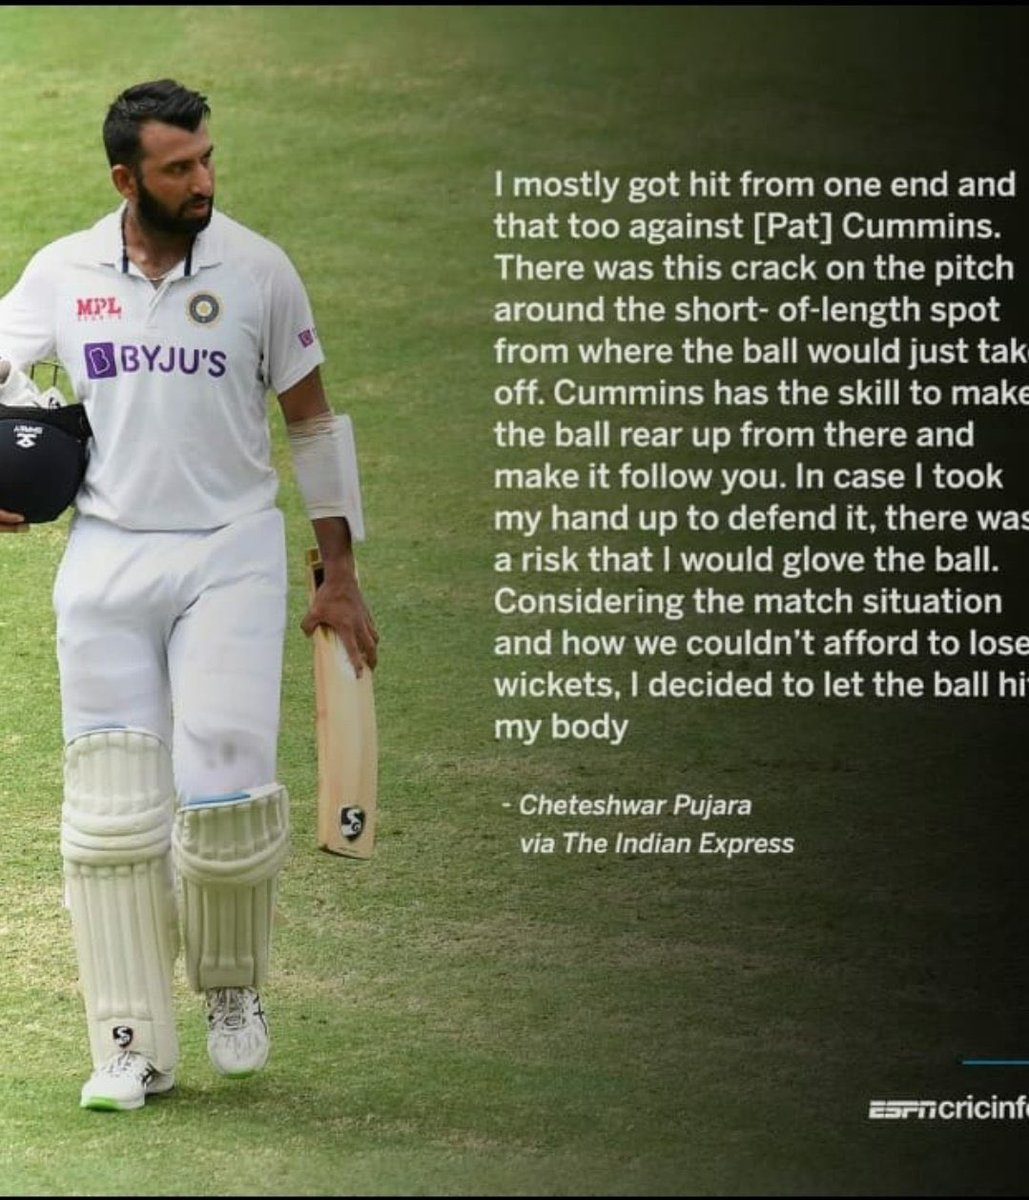 The unsung hero who put his body on the line & took the steam out of the Oz bowlers by holding them at bat for 35 overs 👏👏  India loves u @cheteshwar1 😍🥰  #GabbaBreached  #INDvsAUSTest